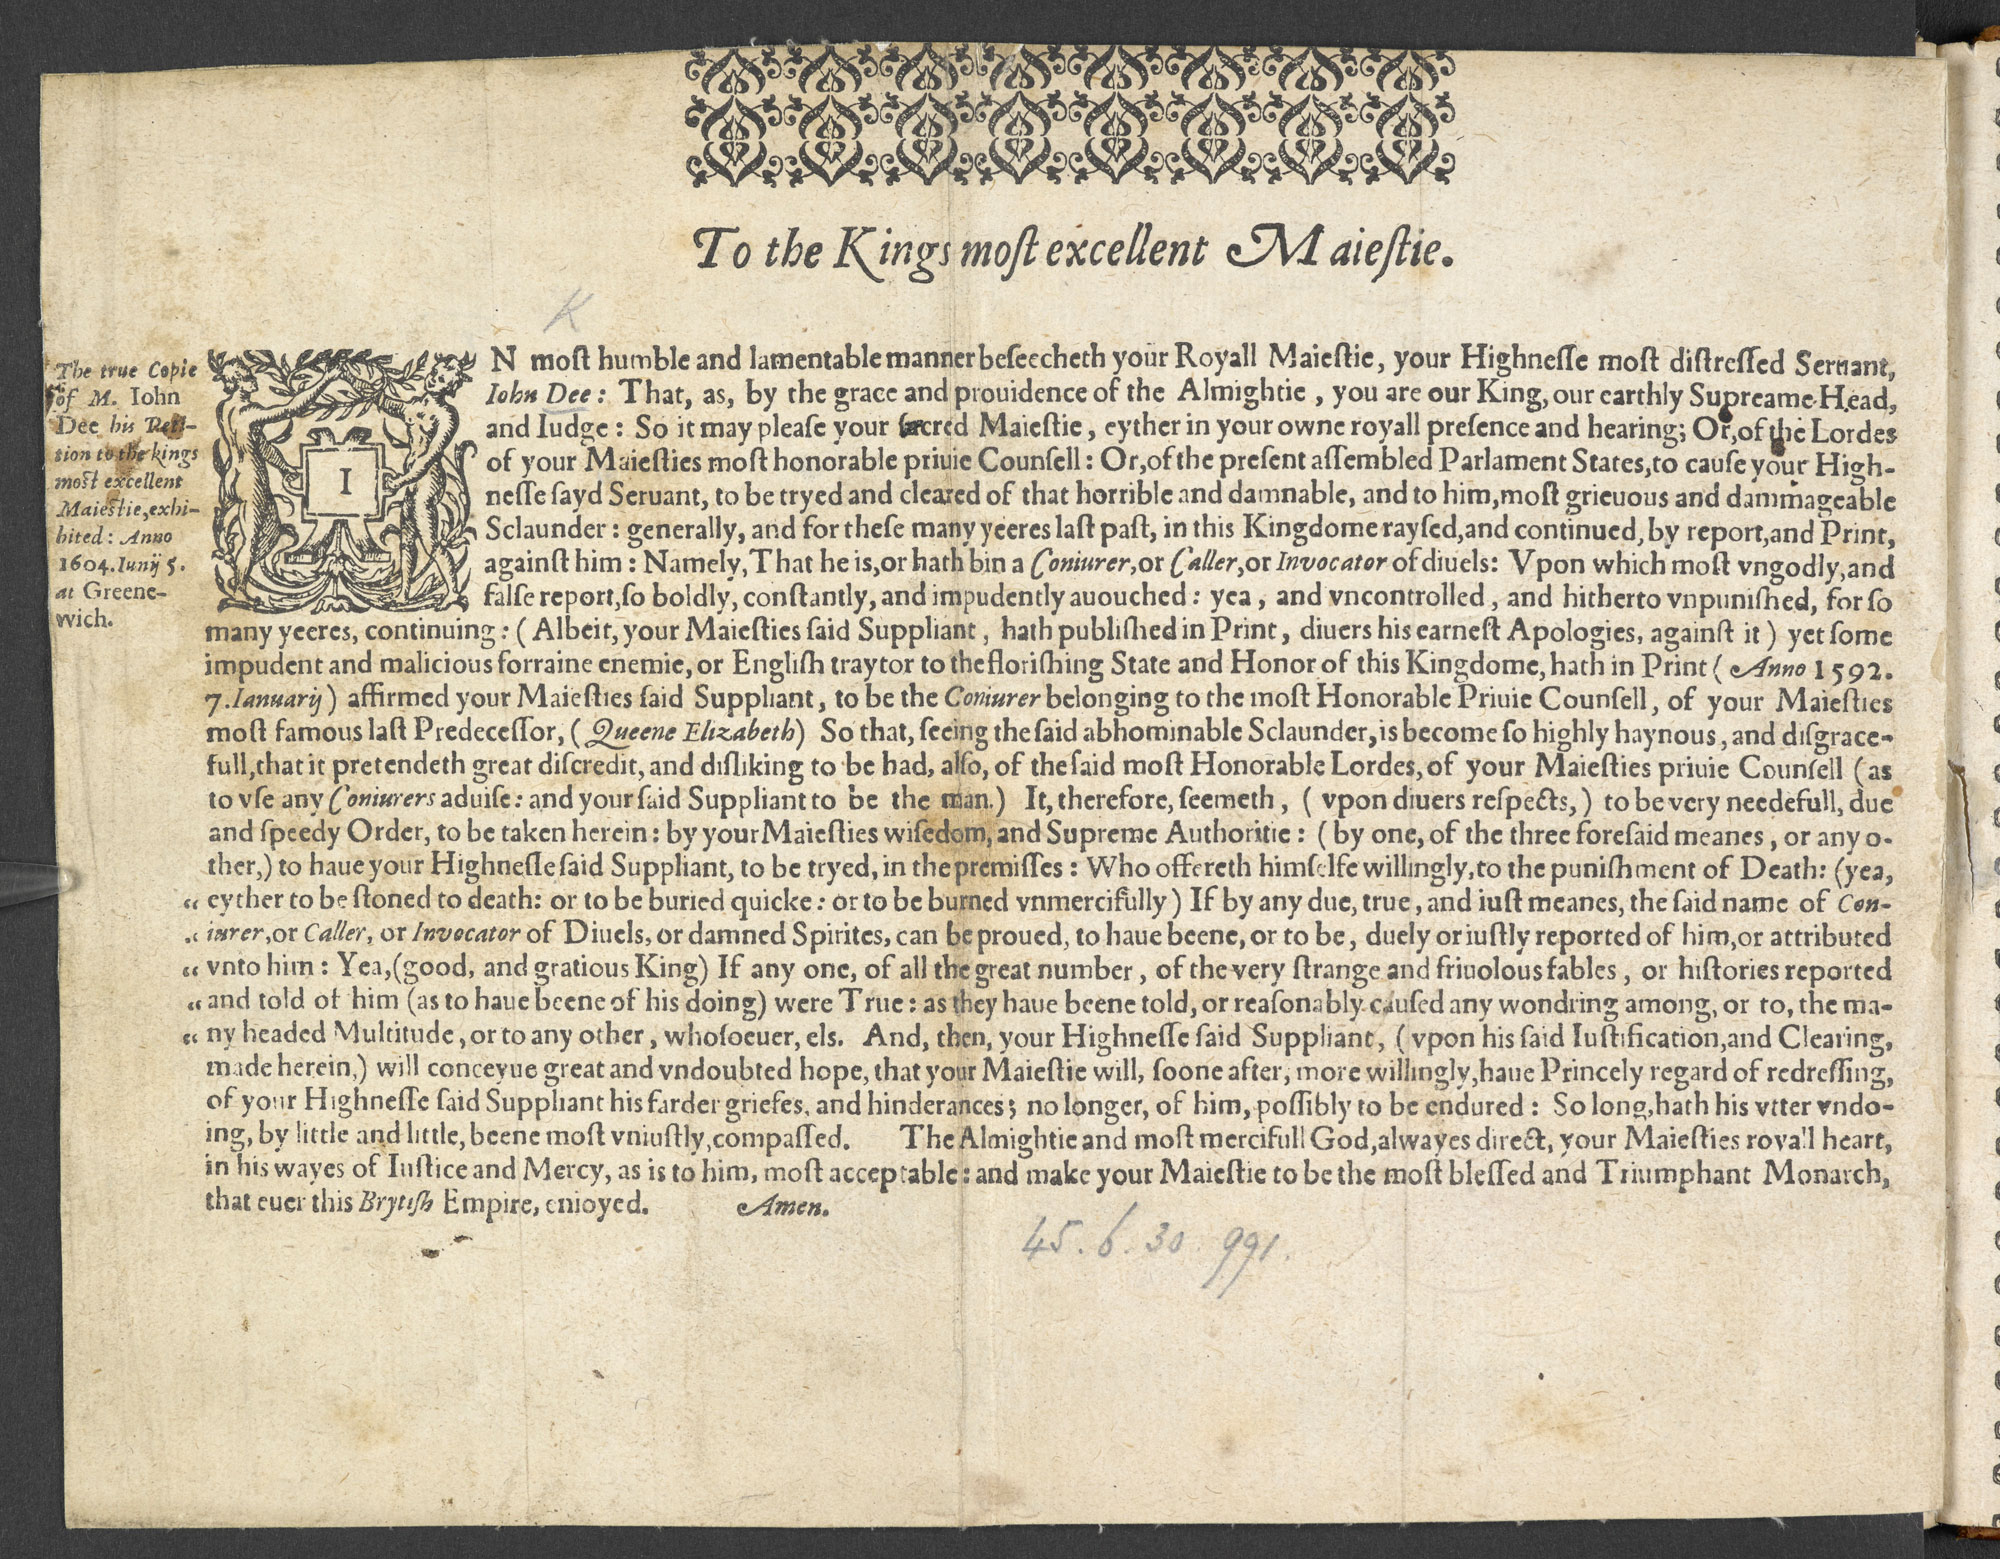 John Dee's petition to James I asking to be cleared of accusations of conjuring, 1604